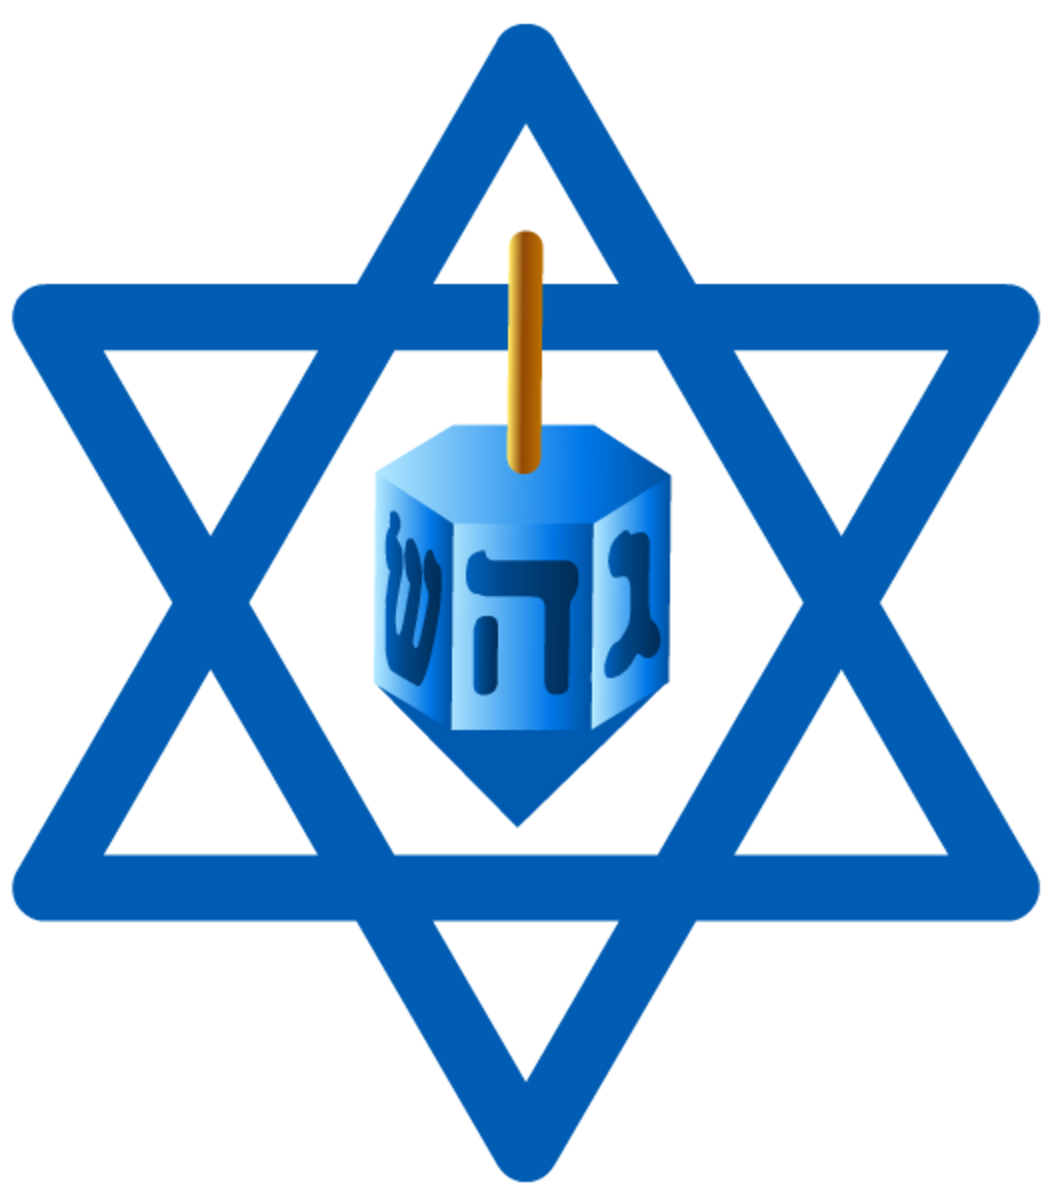 Hanukkah symbols: dreidel and star of David